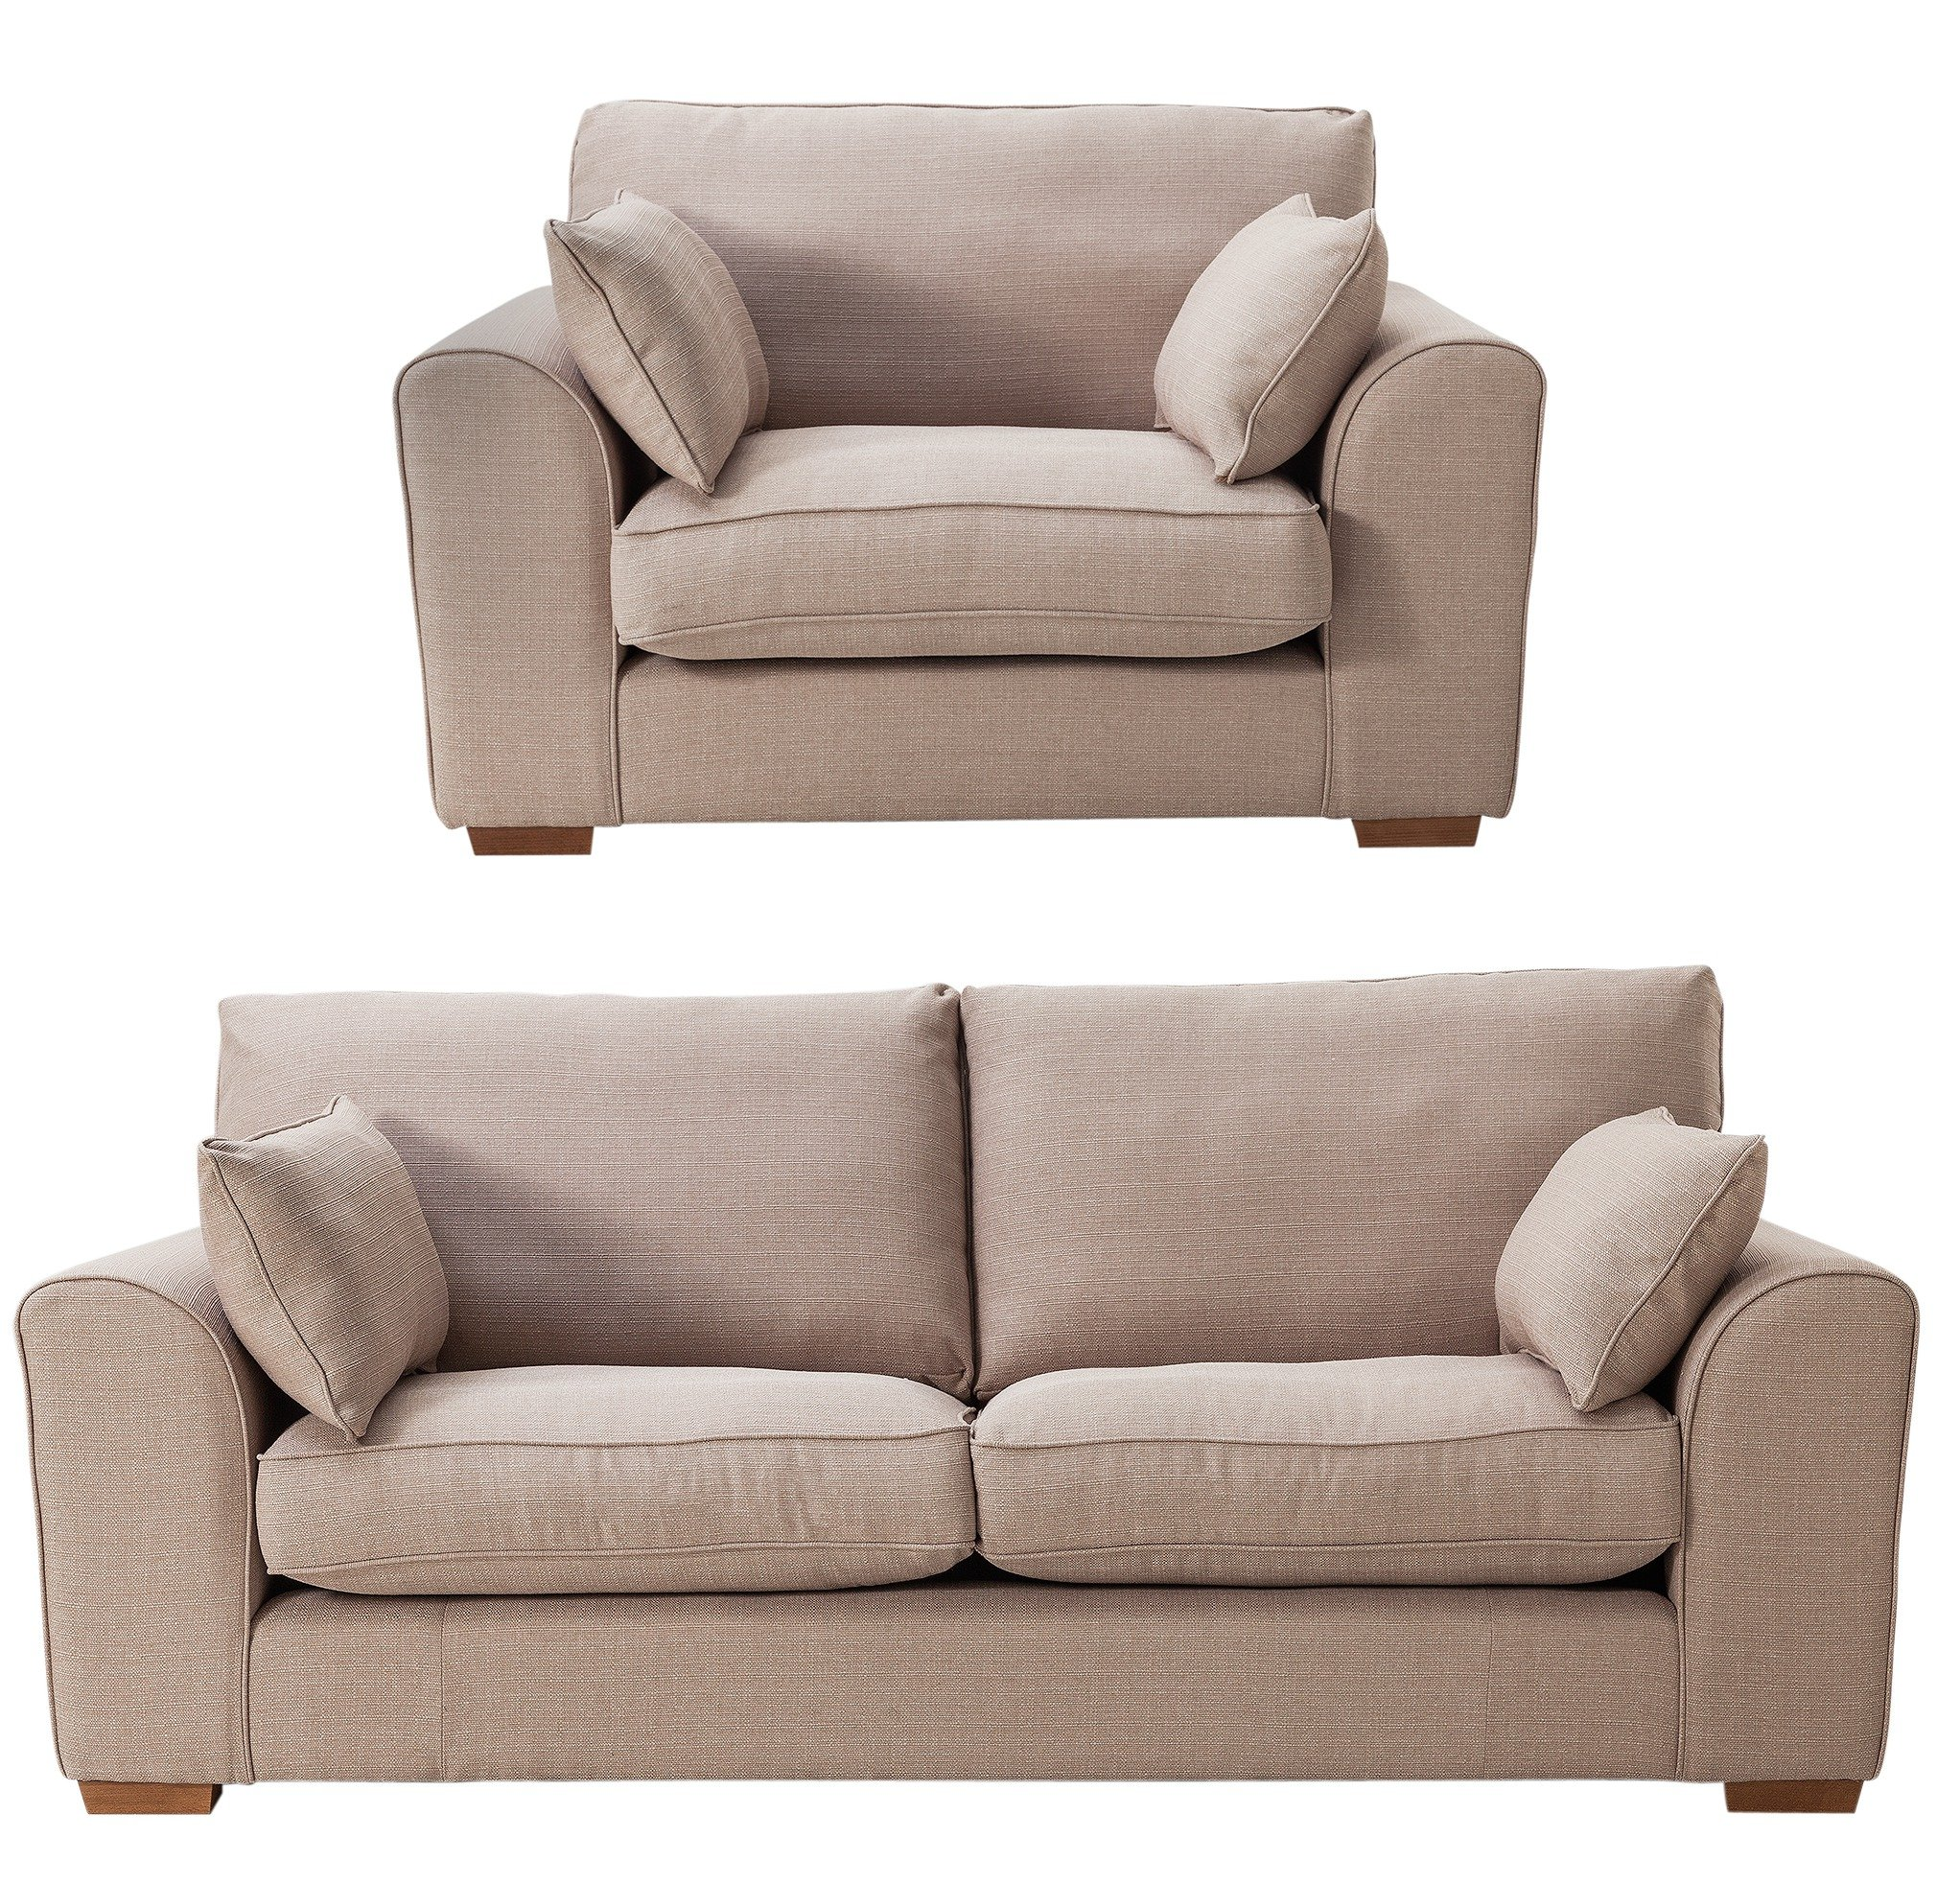 Sale On Collection New Ashdown 3 Seat Sofa And Cuddle